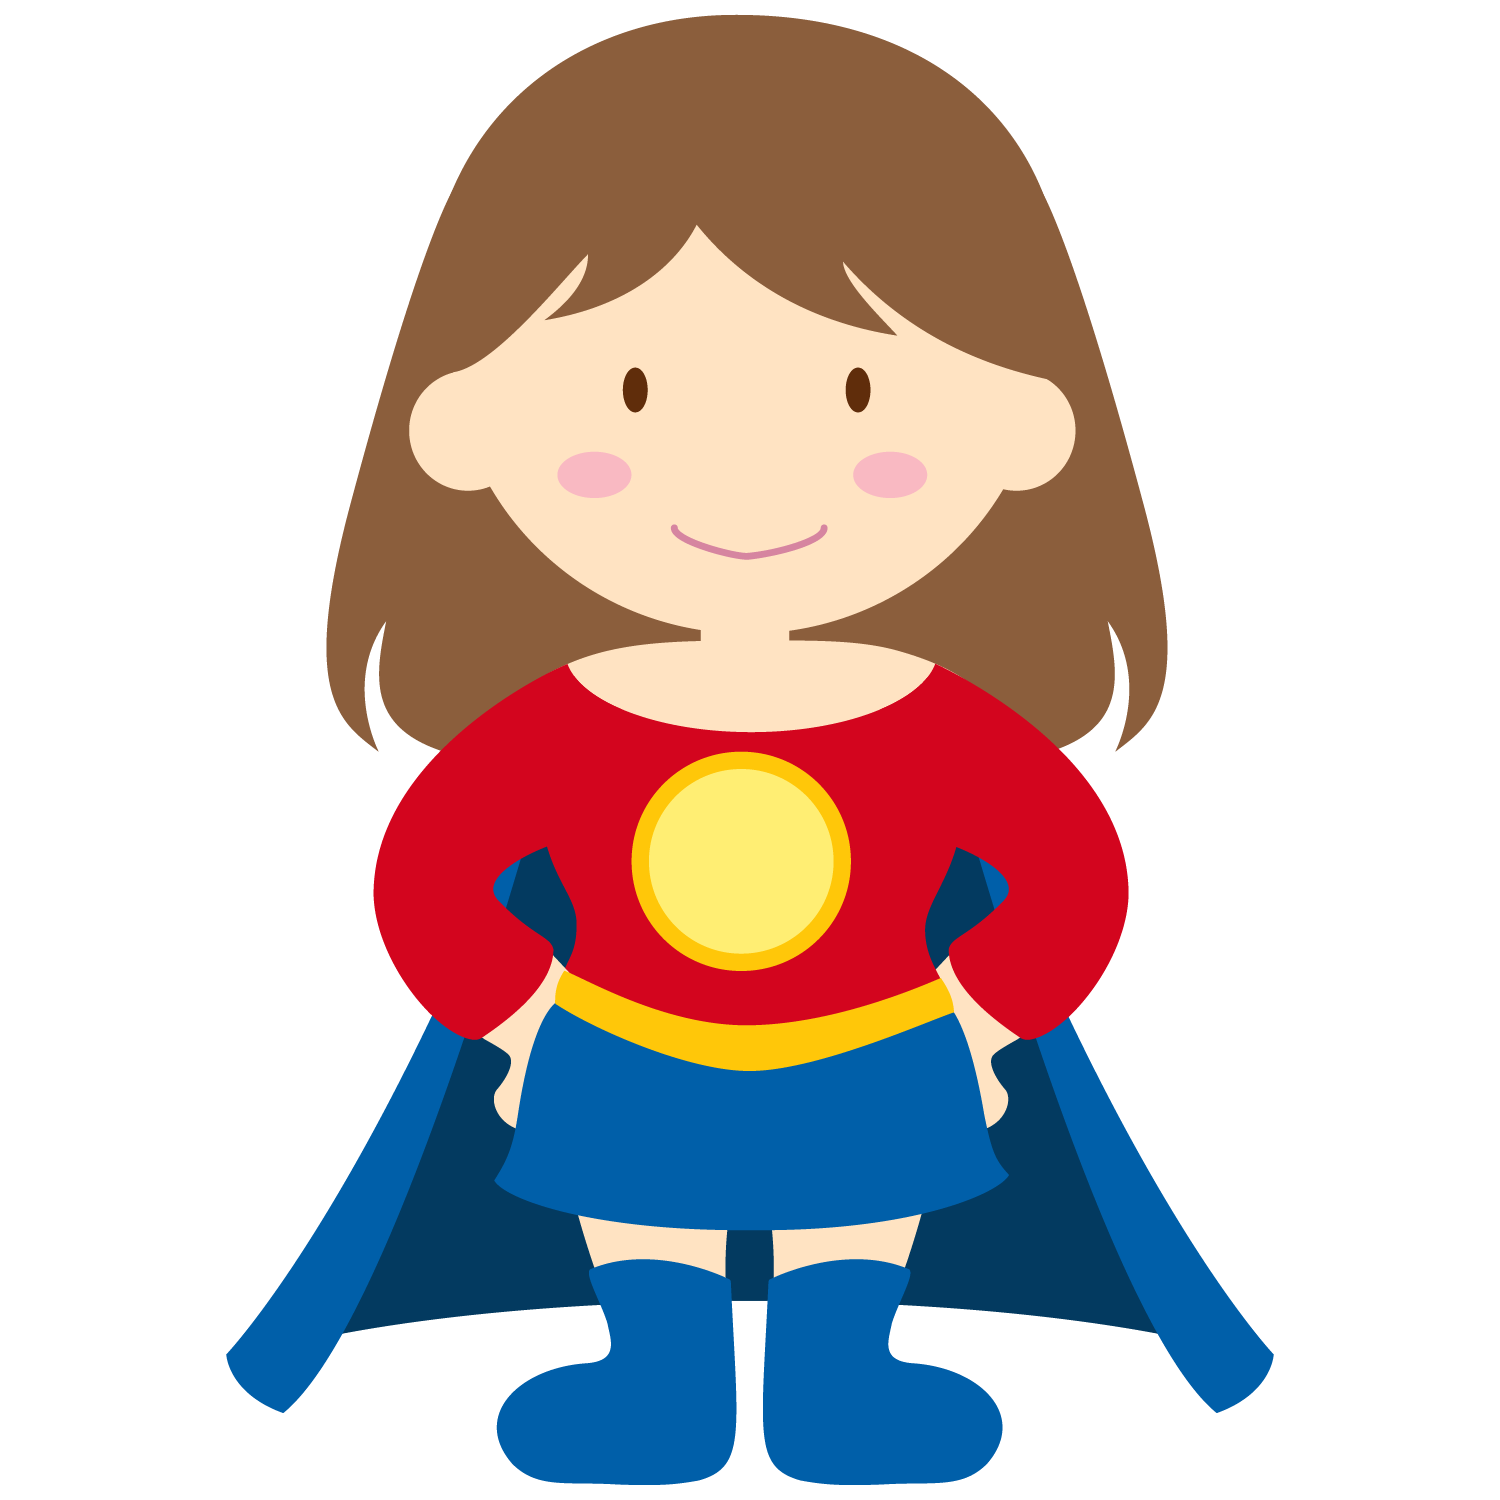 Superhero clipart diverse graphic transparent library Superheroes clipart diverse, Superheroes diverse Transparent ... graphic transparent library